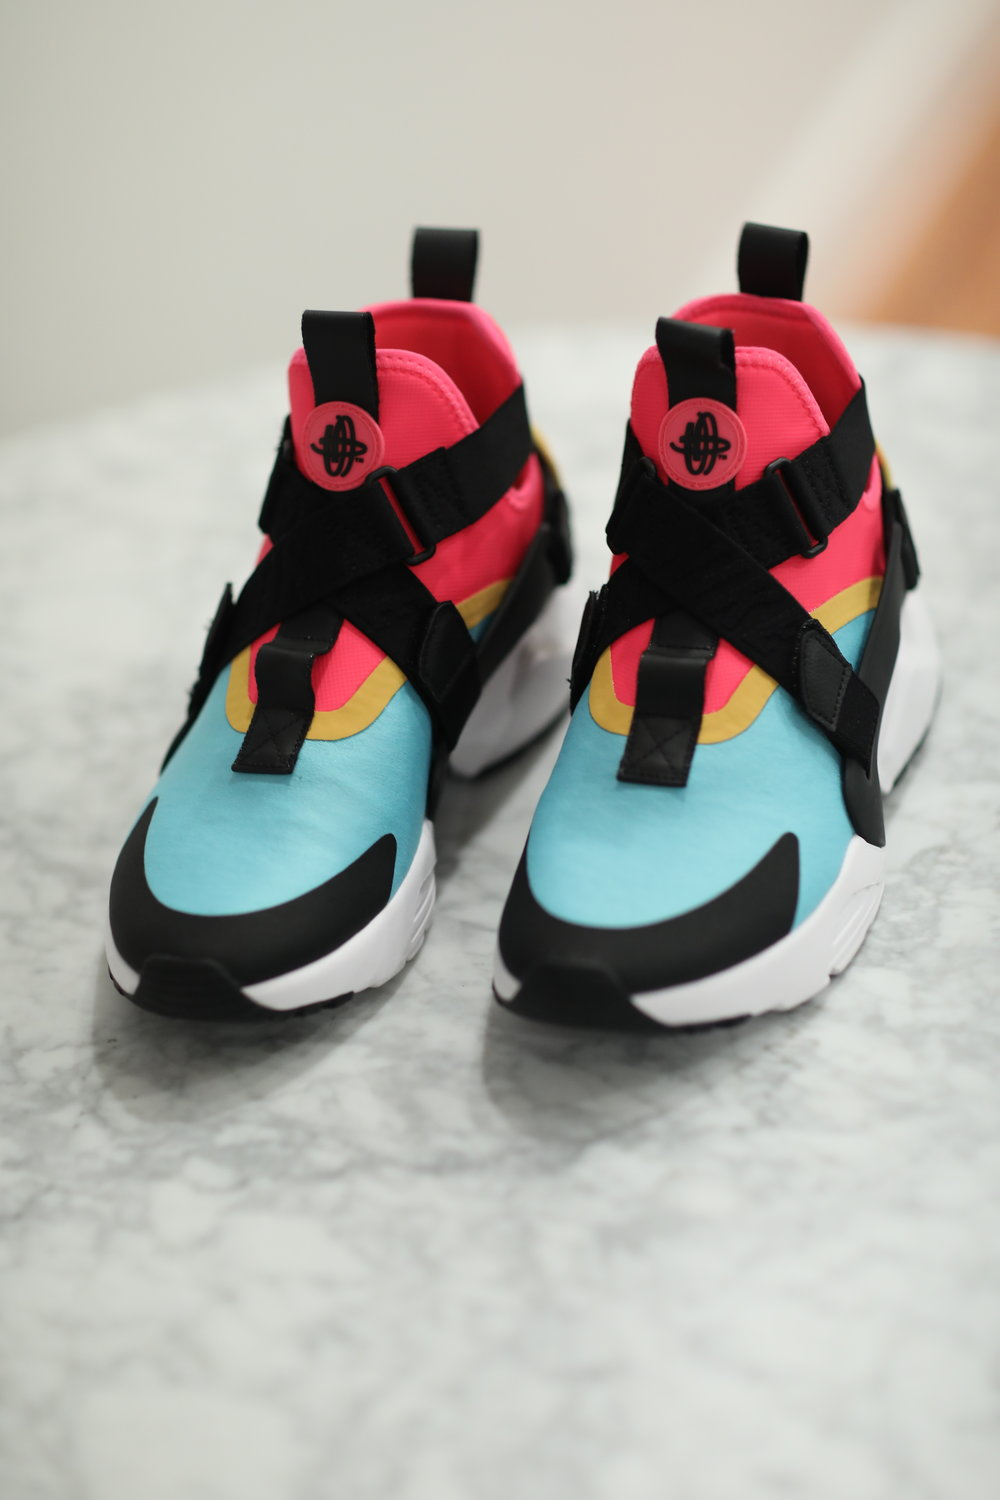 63d707ef84ea ... Nike collaboration is the  official photos 4328b 4ab67 air huarache air  raid hybrid ...